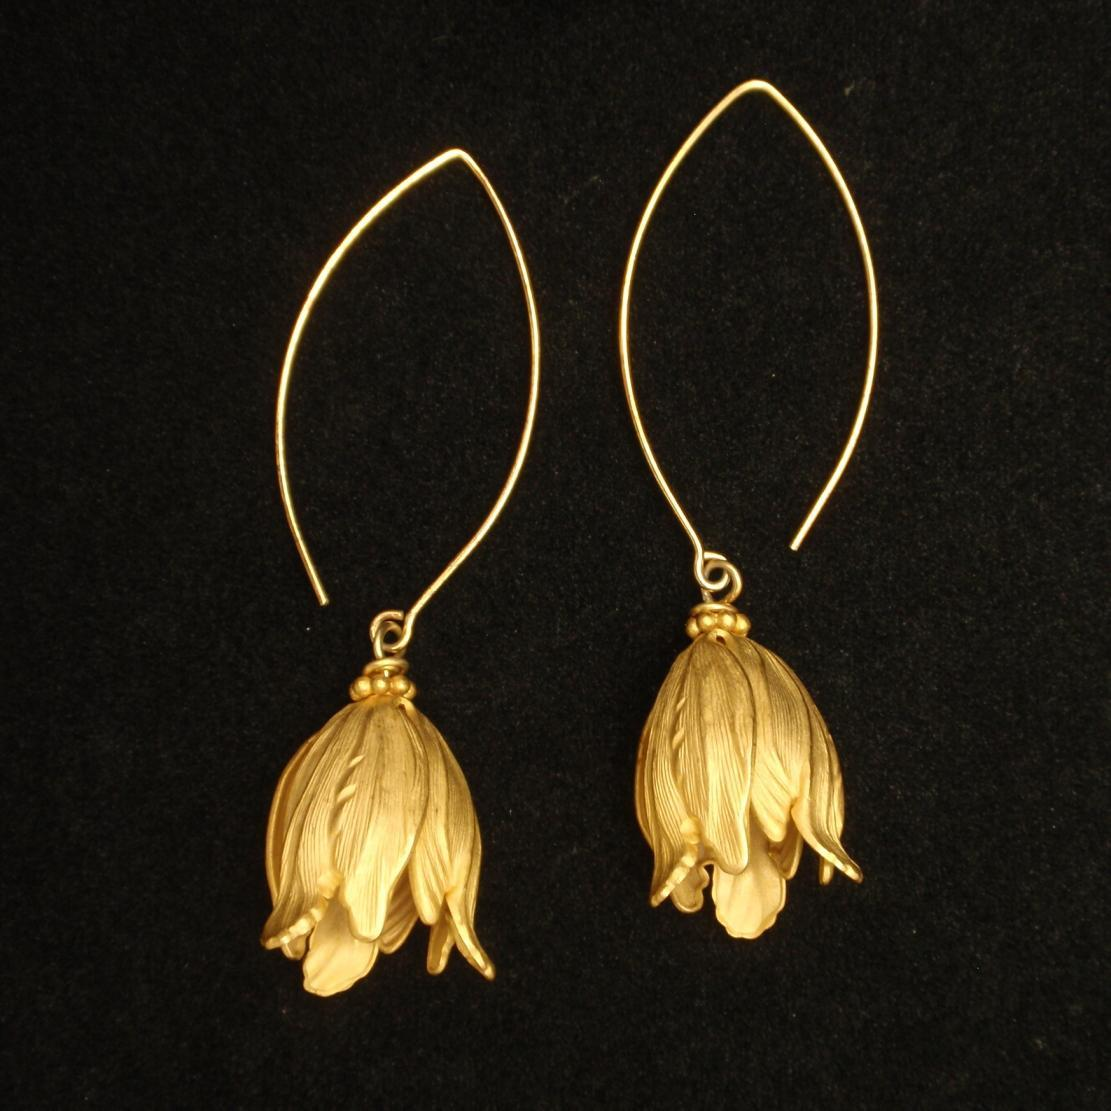 Flower Earrings Gold Tone Drop Open Bloom